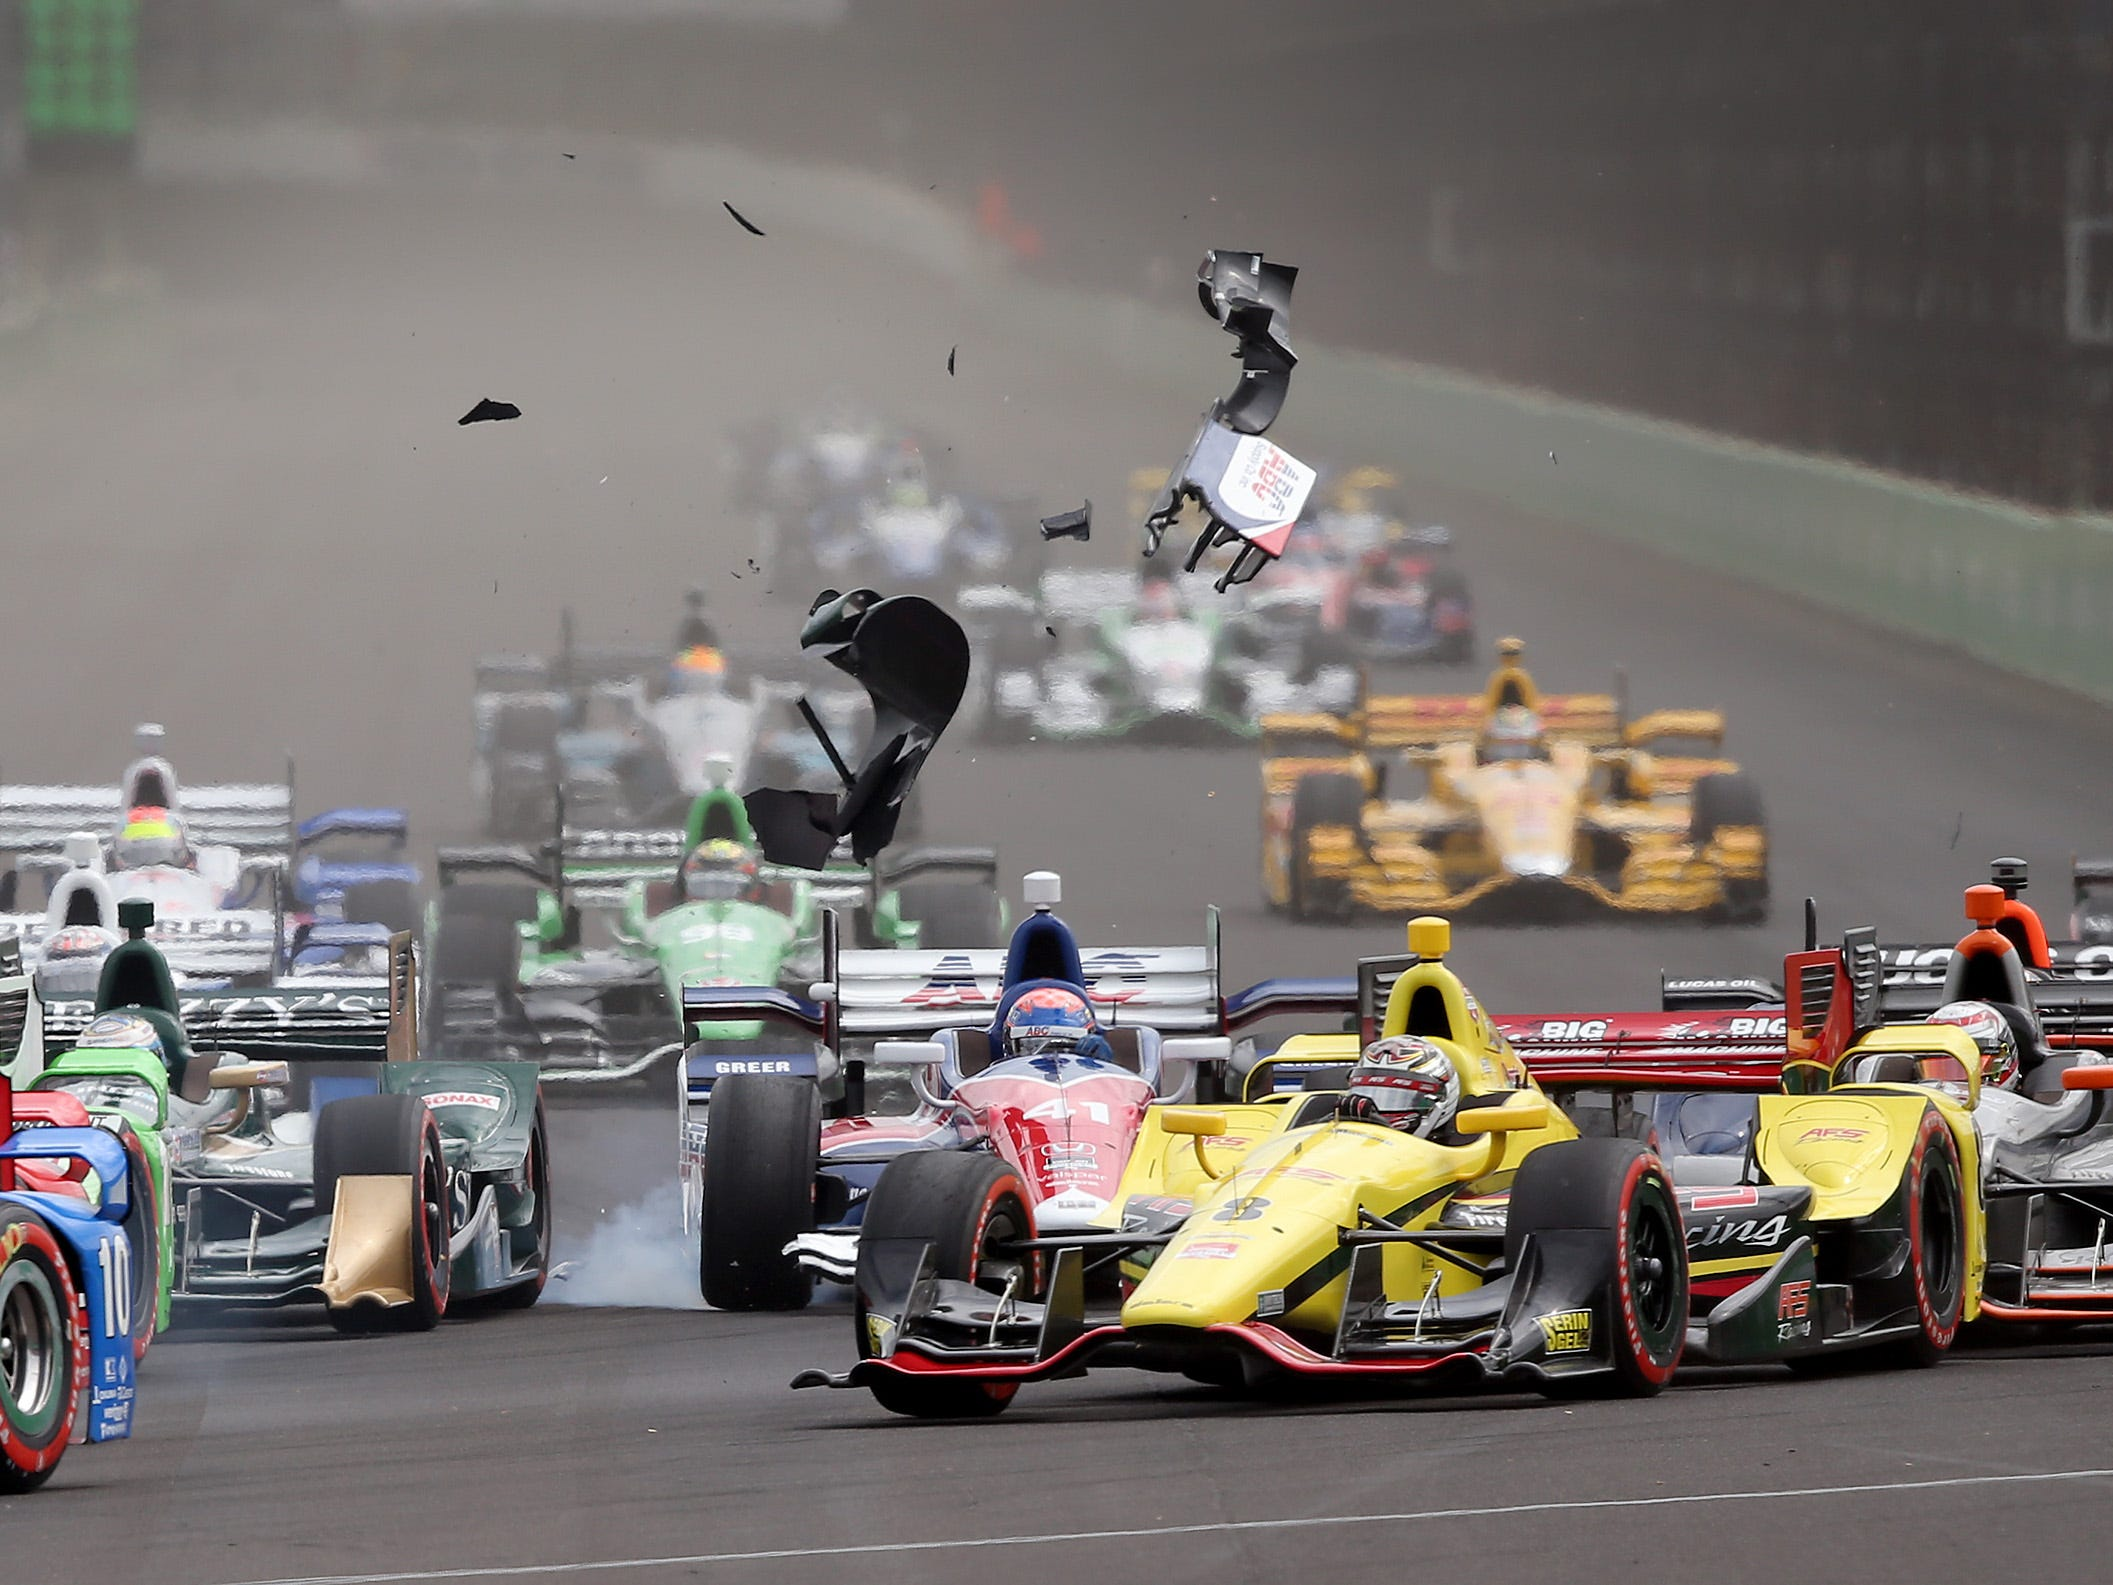 Parts fly off of A.J. Foyt EnterprisesÕ Jack Hawksworth (41) cart as the field of cars turns into turn one at the start of the the Angie's List Grand Prix of Indianapolis Saturday, May 9, afternoon at the Indianapolis Motor Speedway.